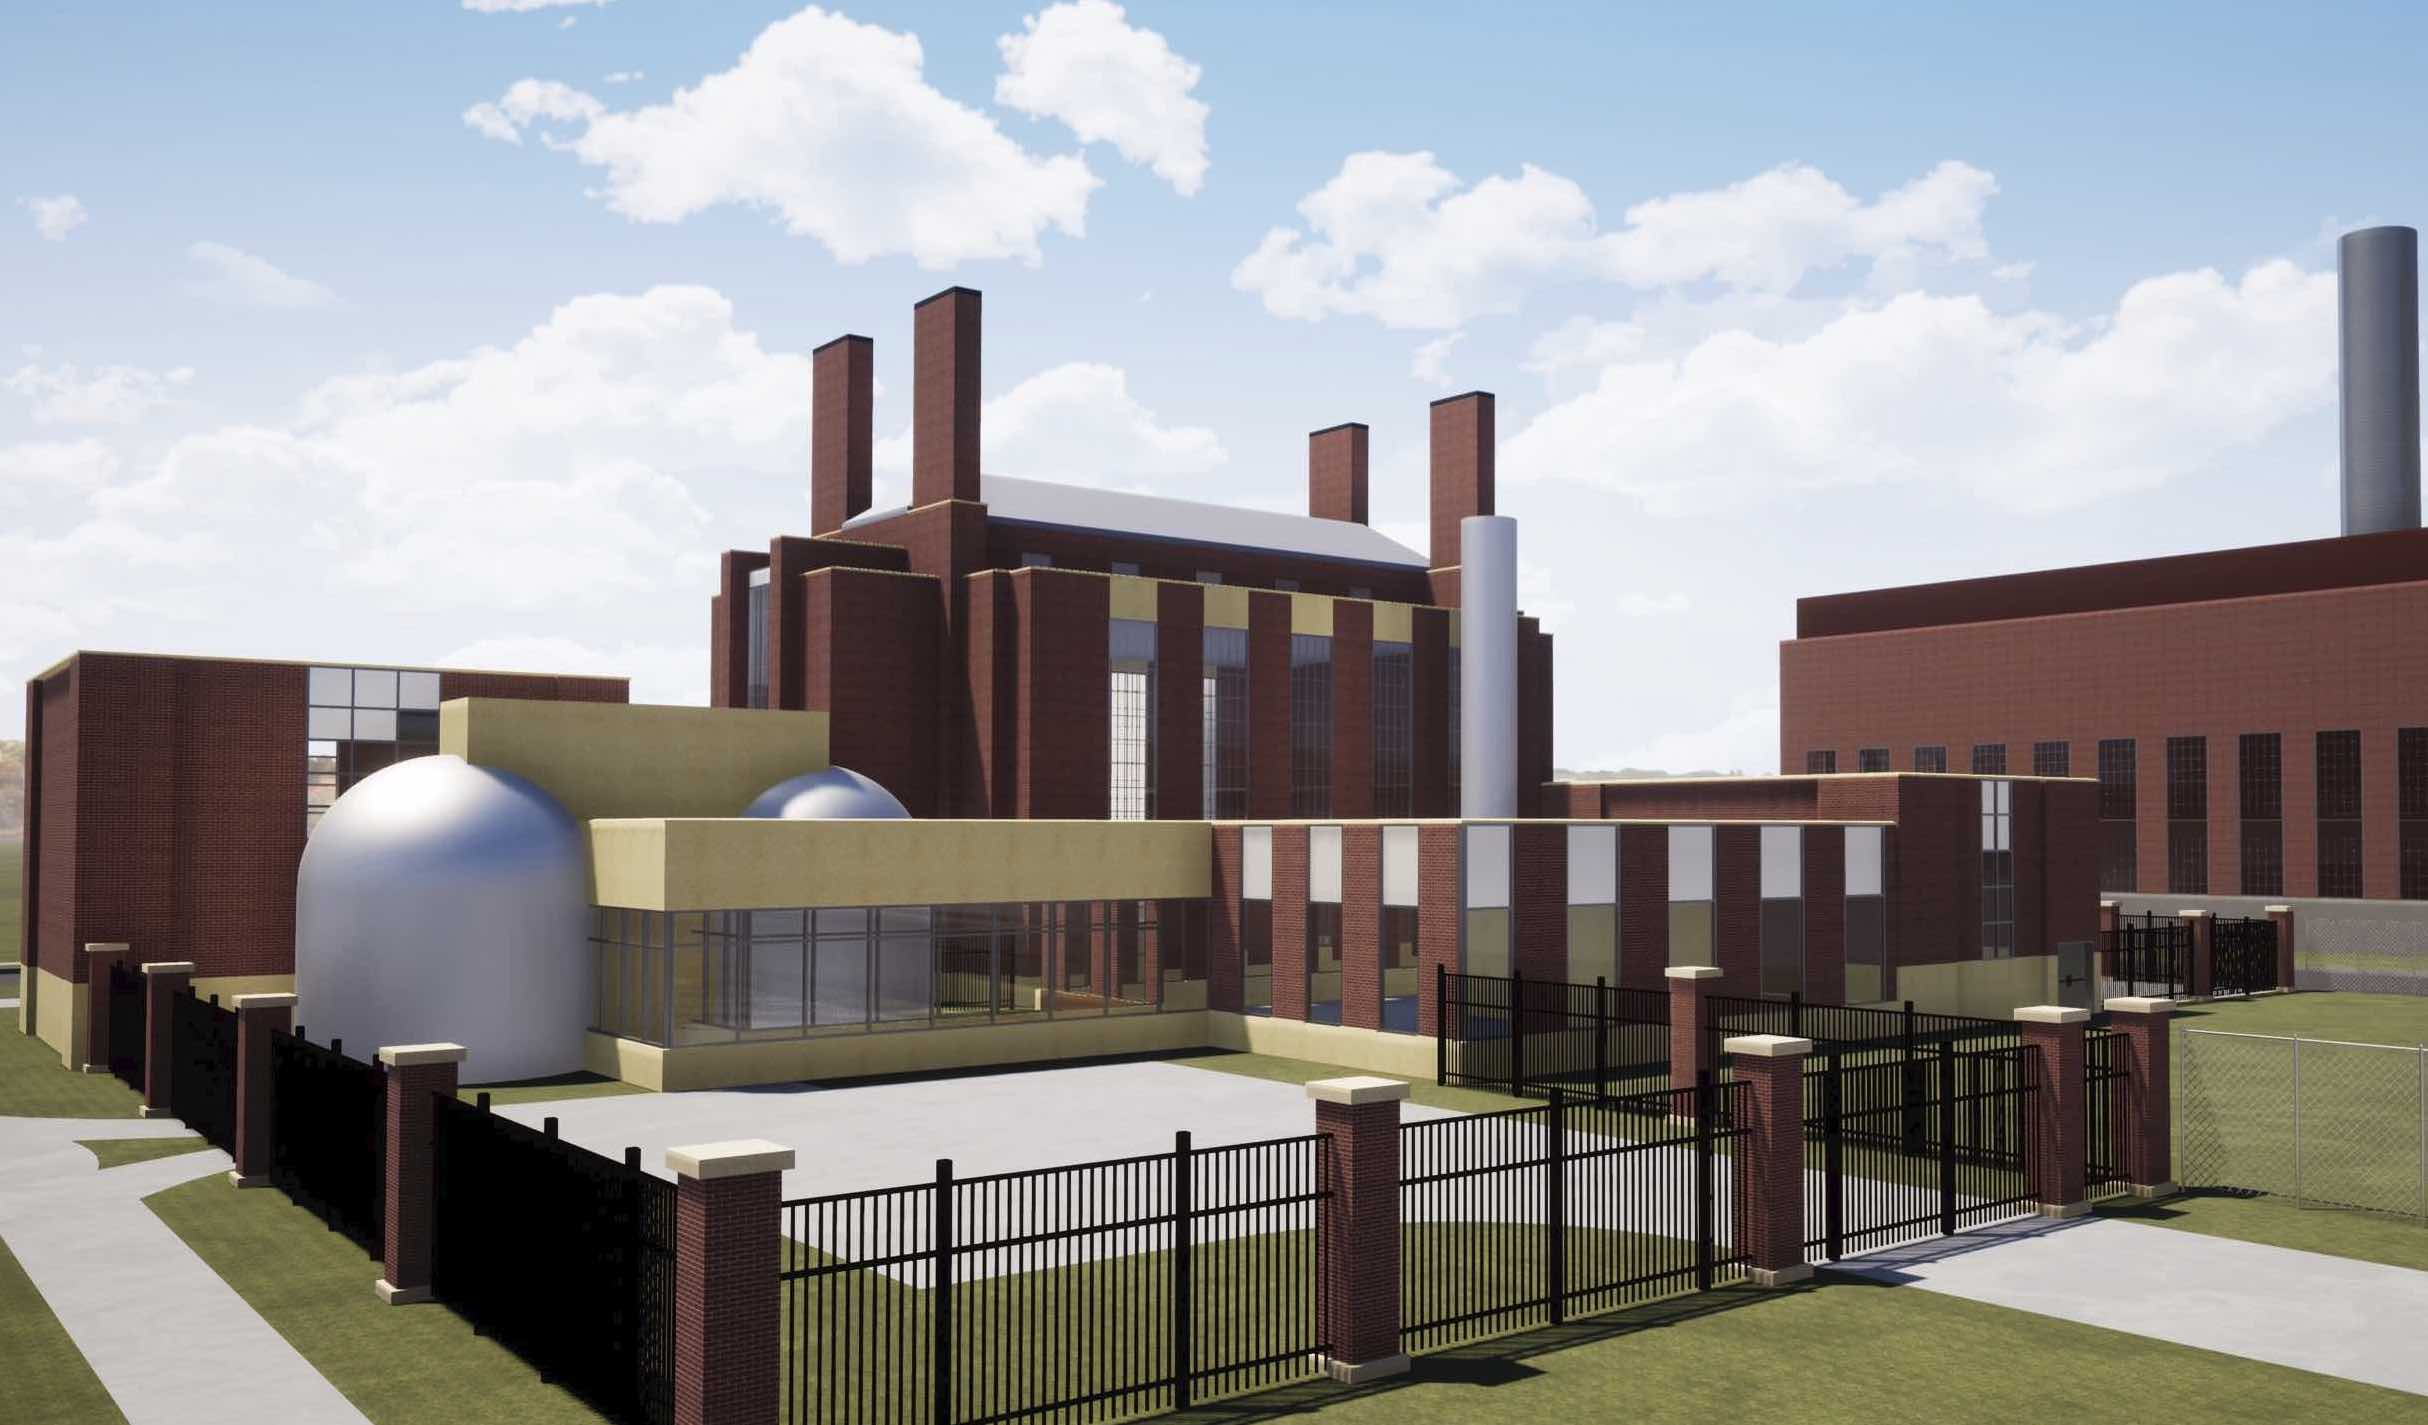 University of Illinois and Ultra Safe Nuclear Corporation Propose First Gen IV Research Reactor at a U.S. University